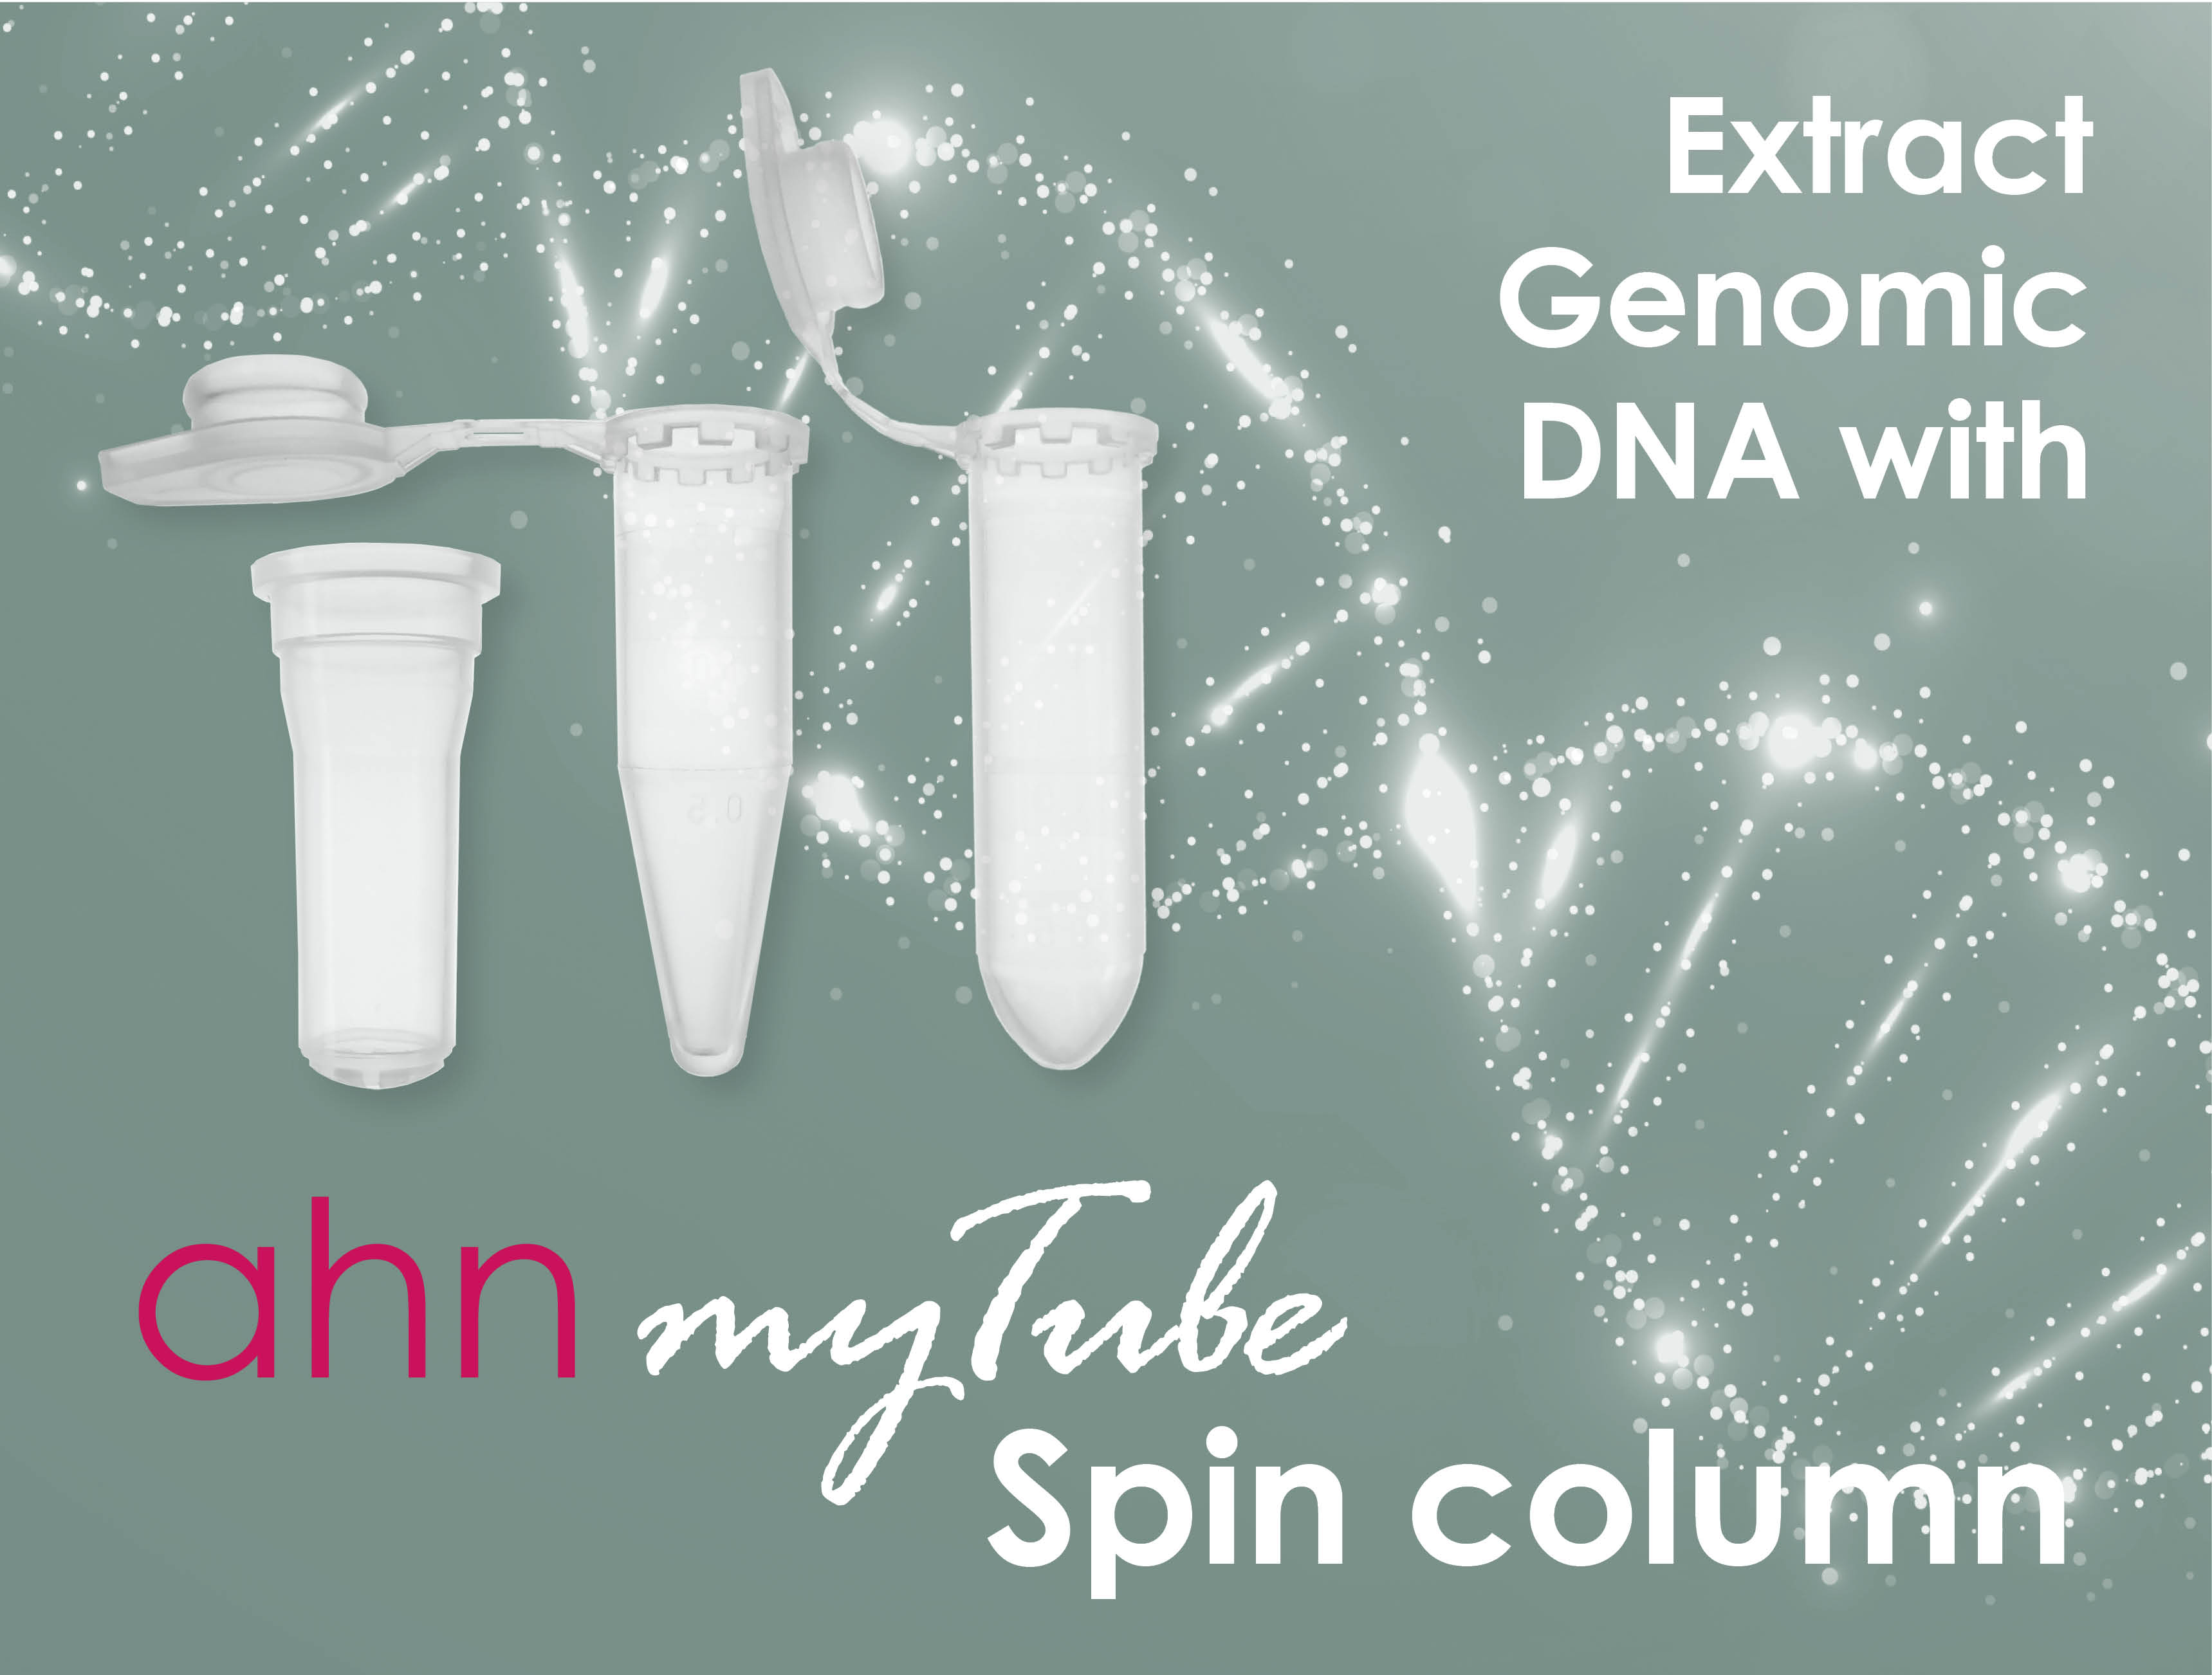 genomic DNA extraction